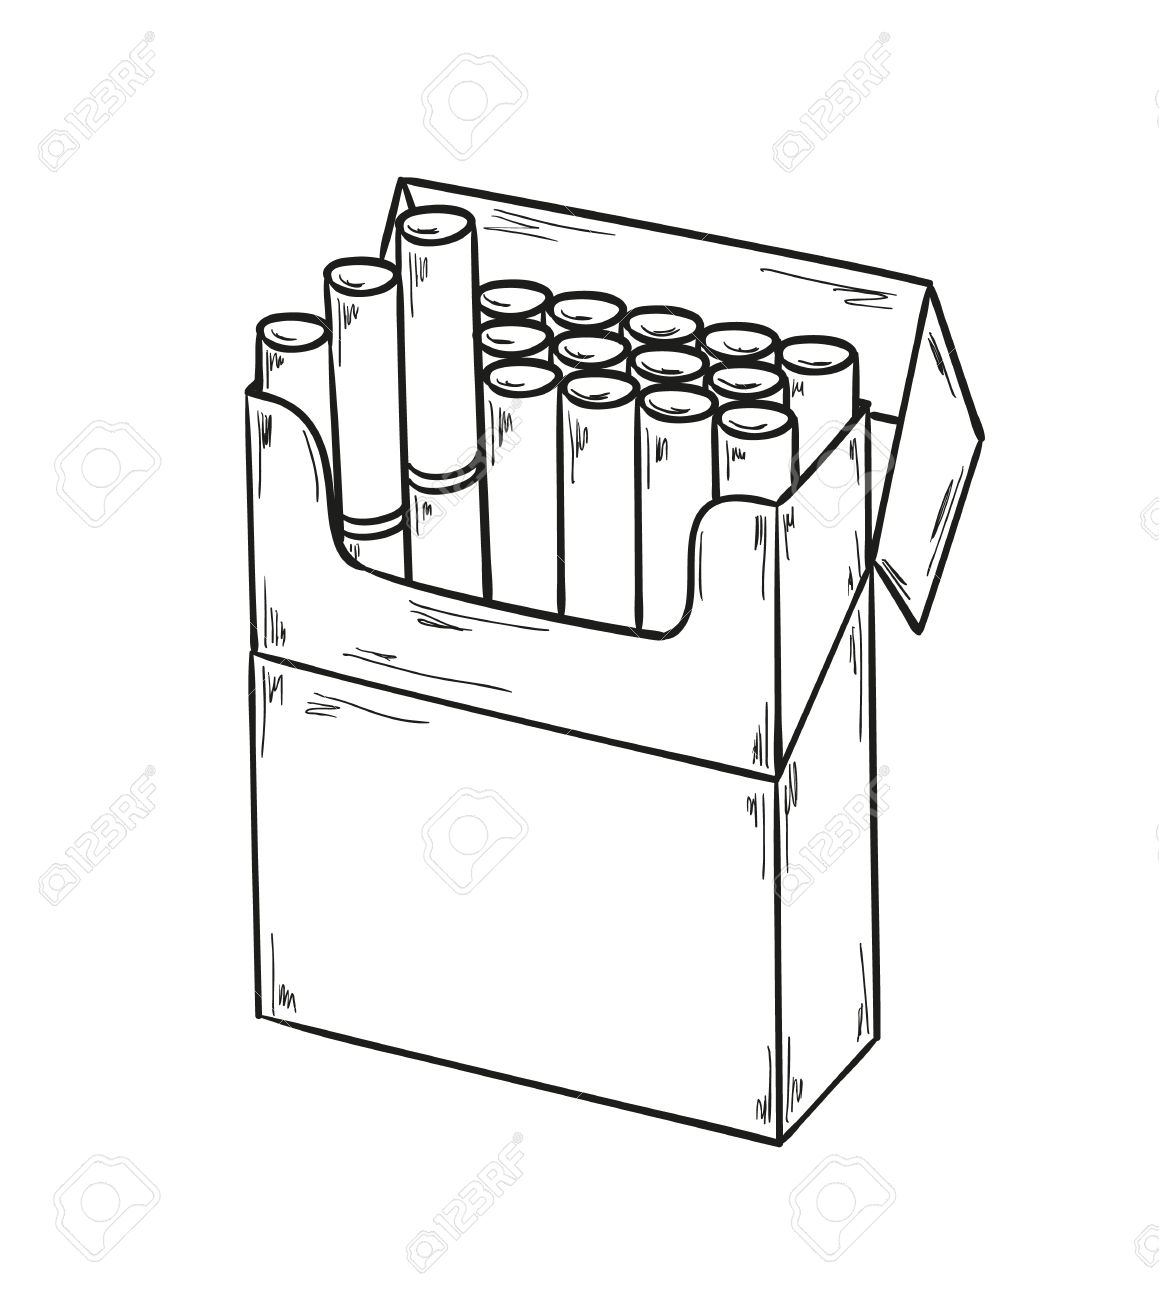 1159x1300 Cigarette Pack Drawing Cigarette Packet Drawing